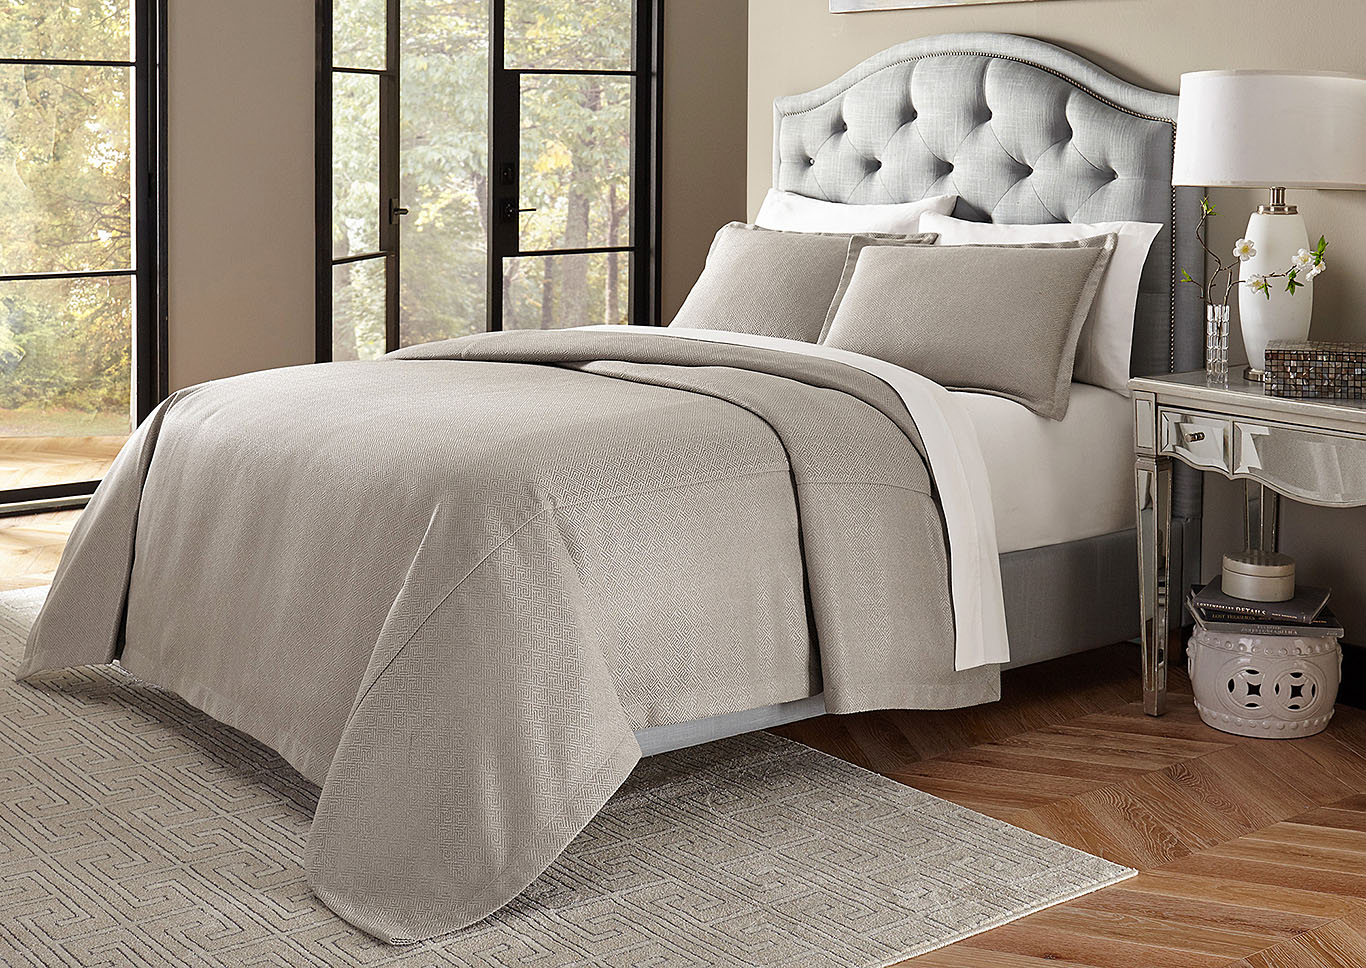 Port Orleans Grey 3 pc. Queen Bed Throw Set,AICO